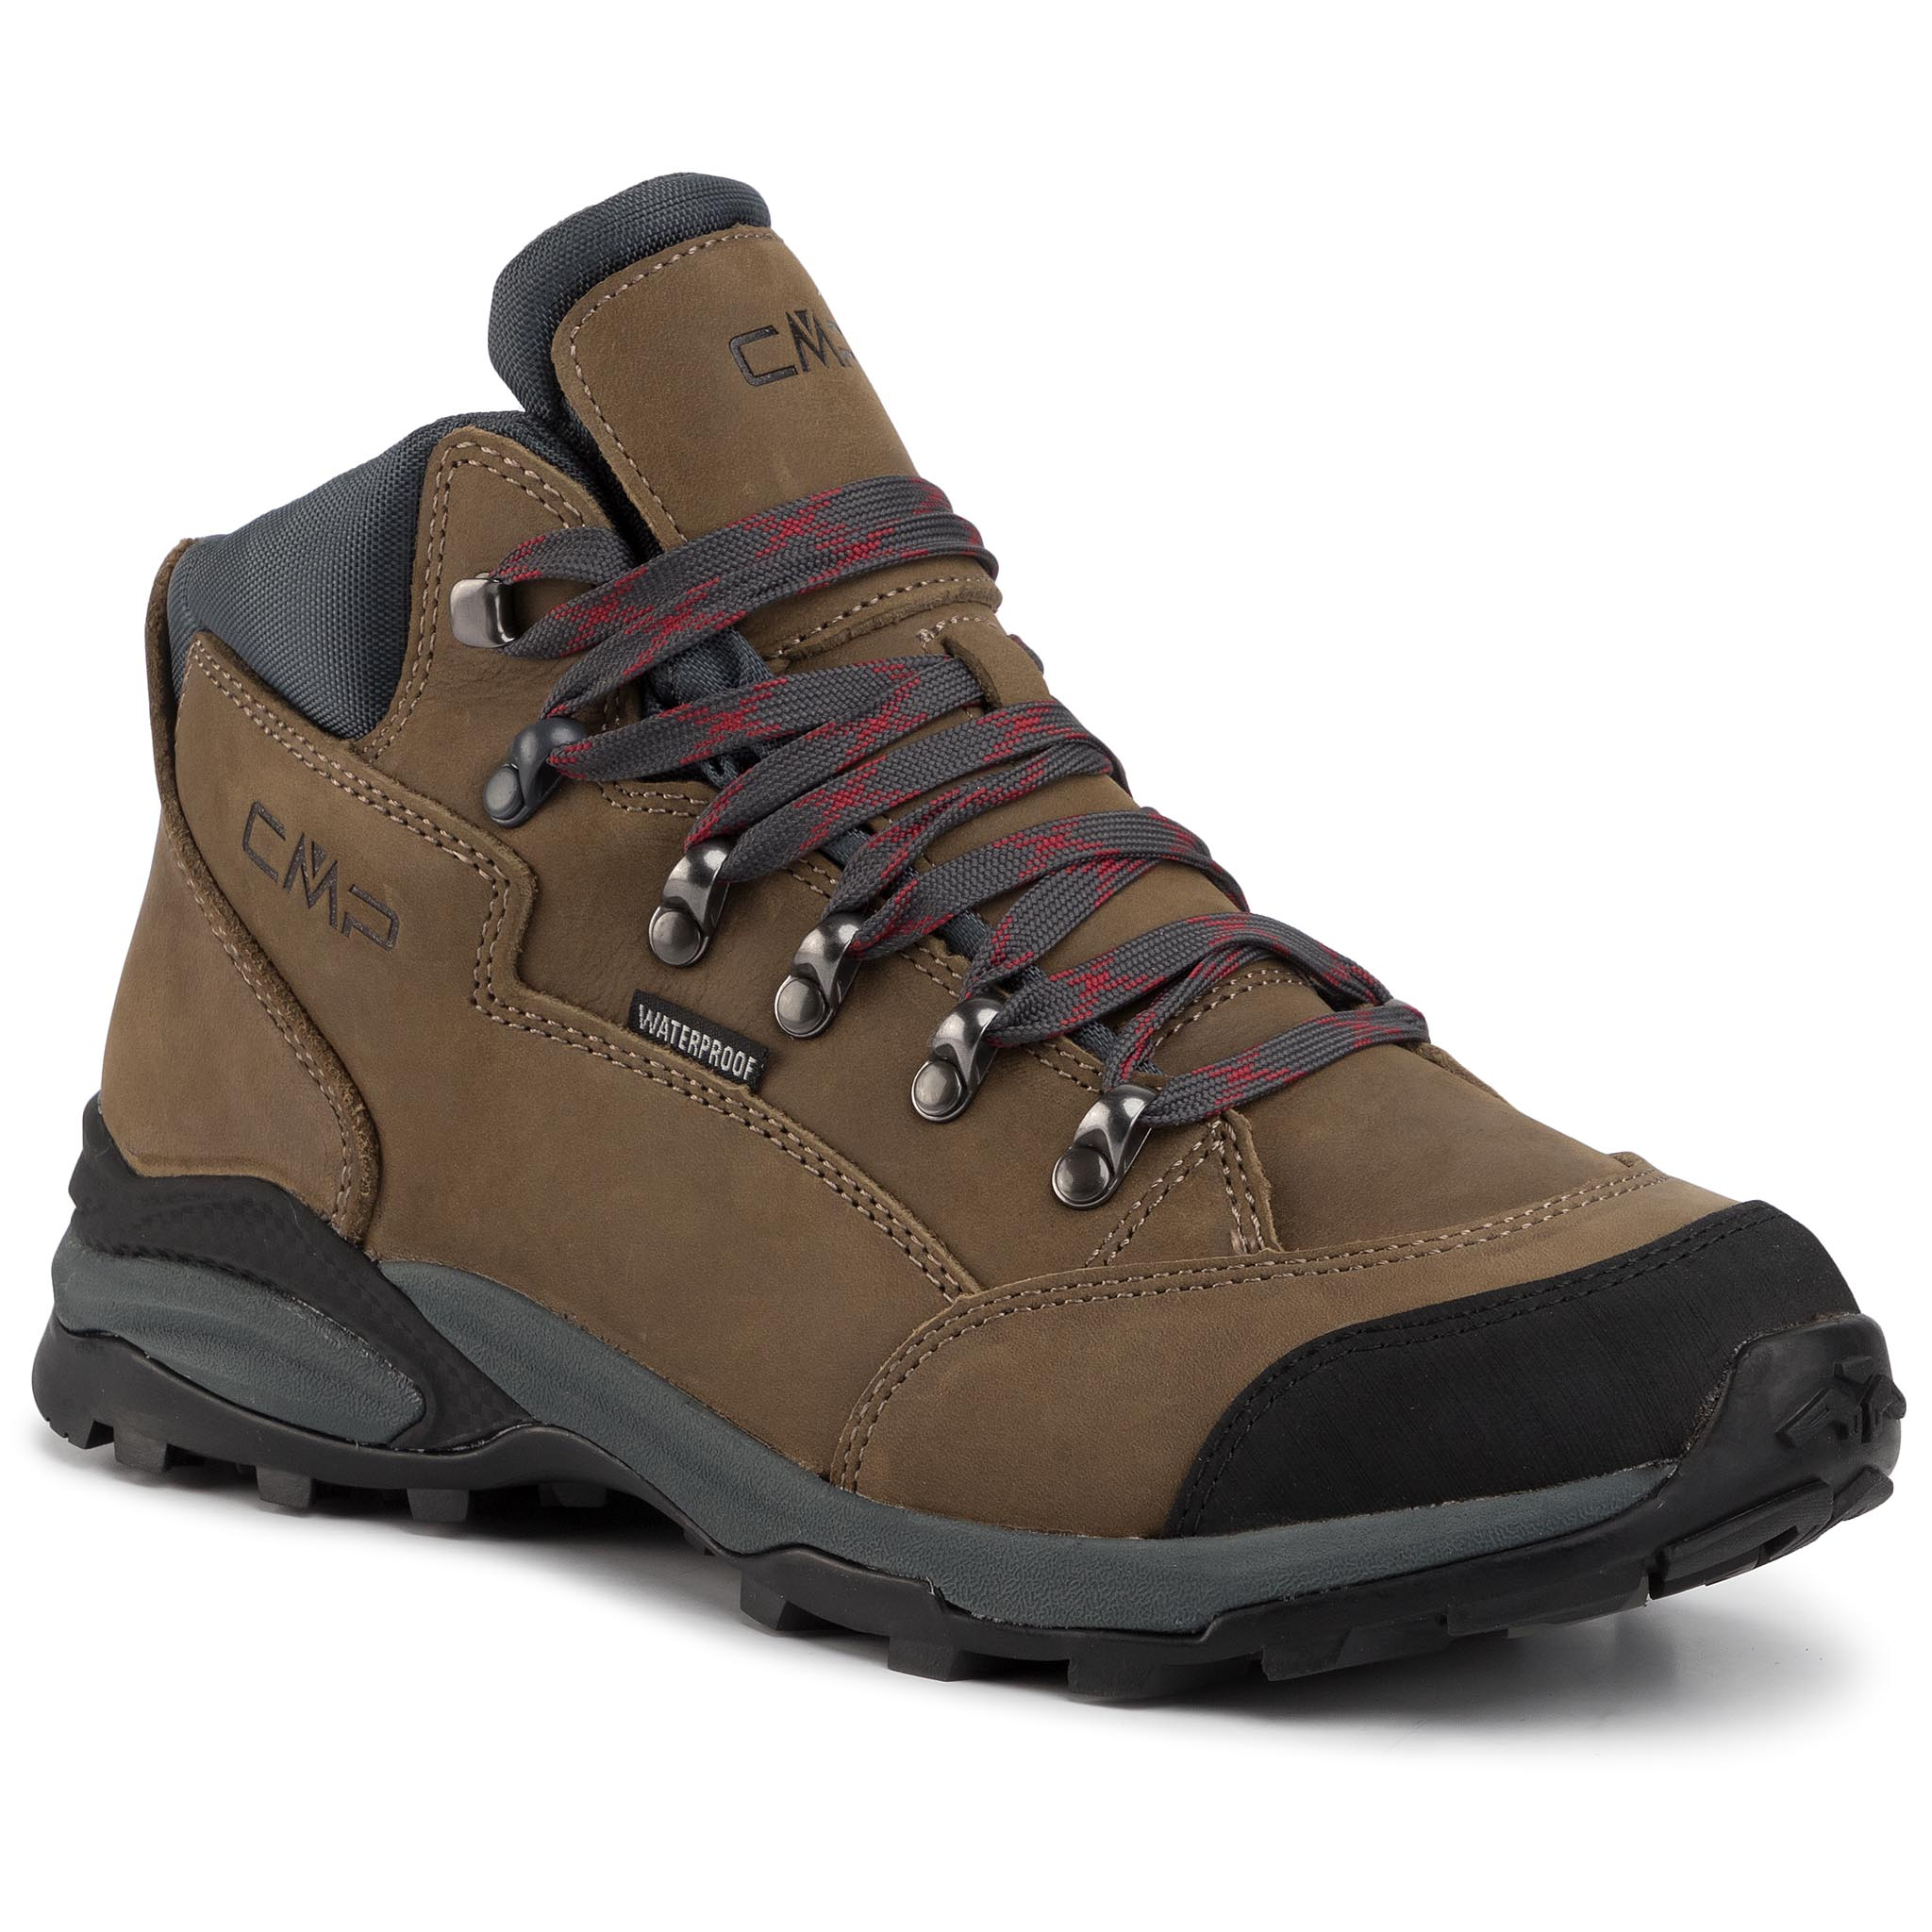 Trekkings Cmp - Mirzam Trekking Shoes Wp 3q49877 Tabacco P969 imagine epantofi.ro 2021